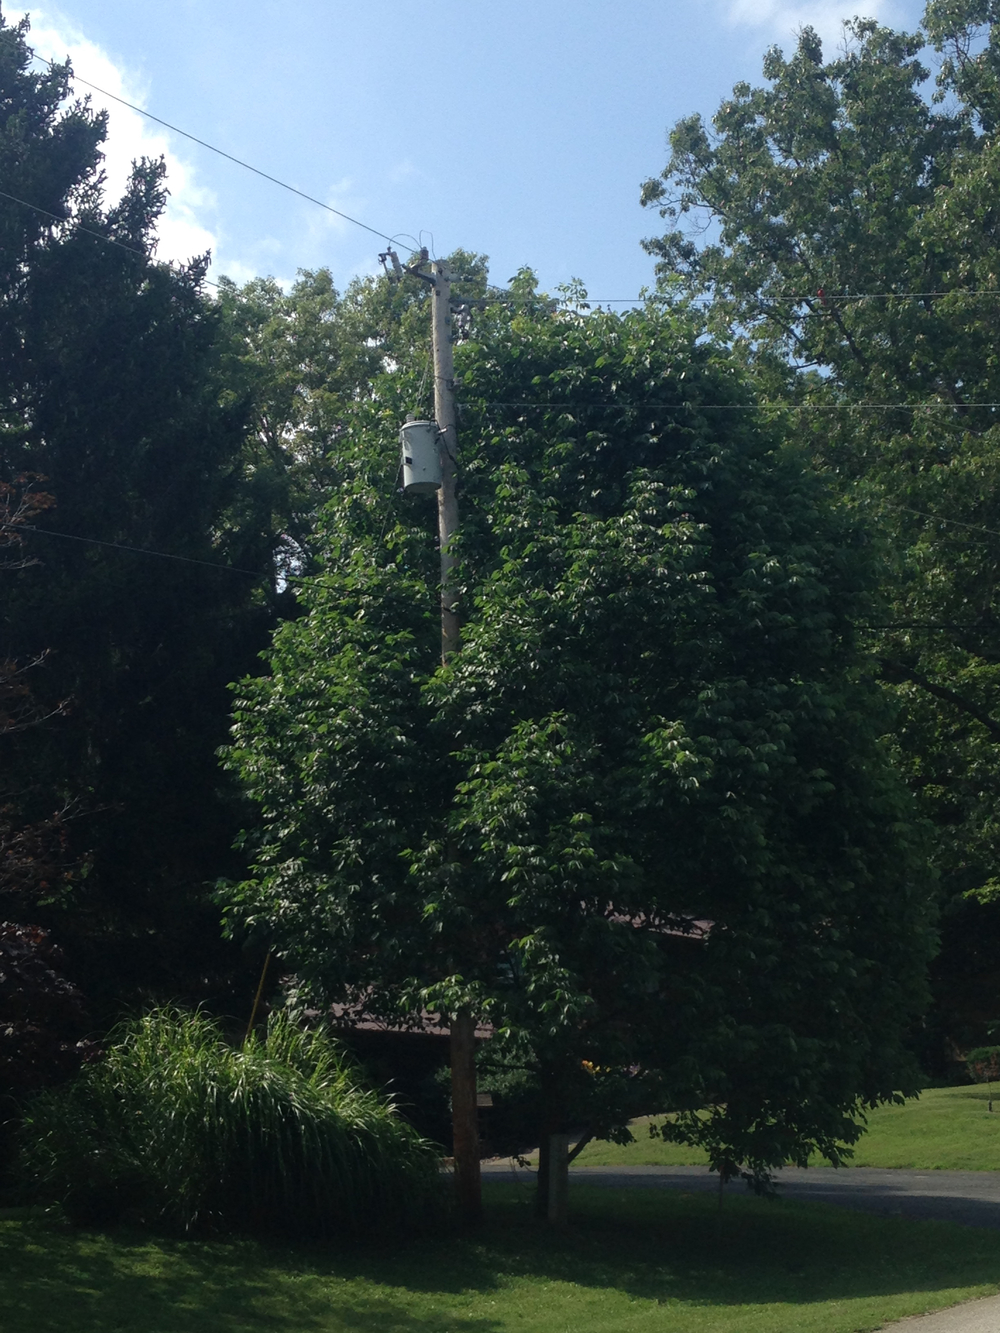 This is an example of an ash that is not worth saving. (Vigorous and healthy, yes, but it's underneath a powerline.)  This tree will be topped to keep out of Powerlines, so investment in treatment is not recommended. In fact, this tree should be removed.